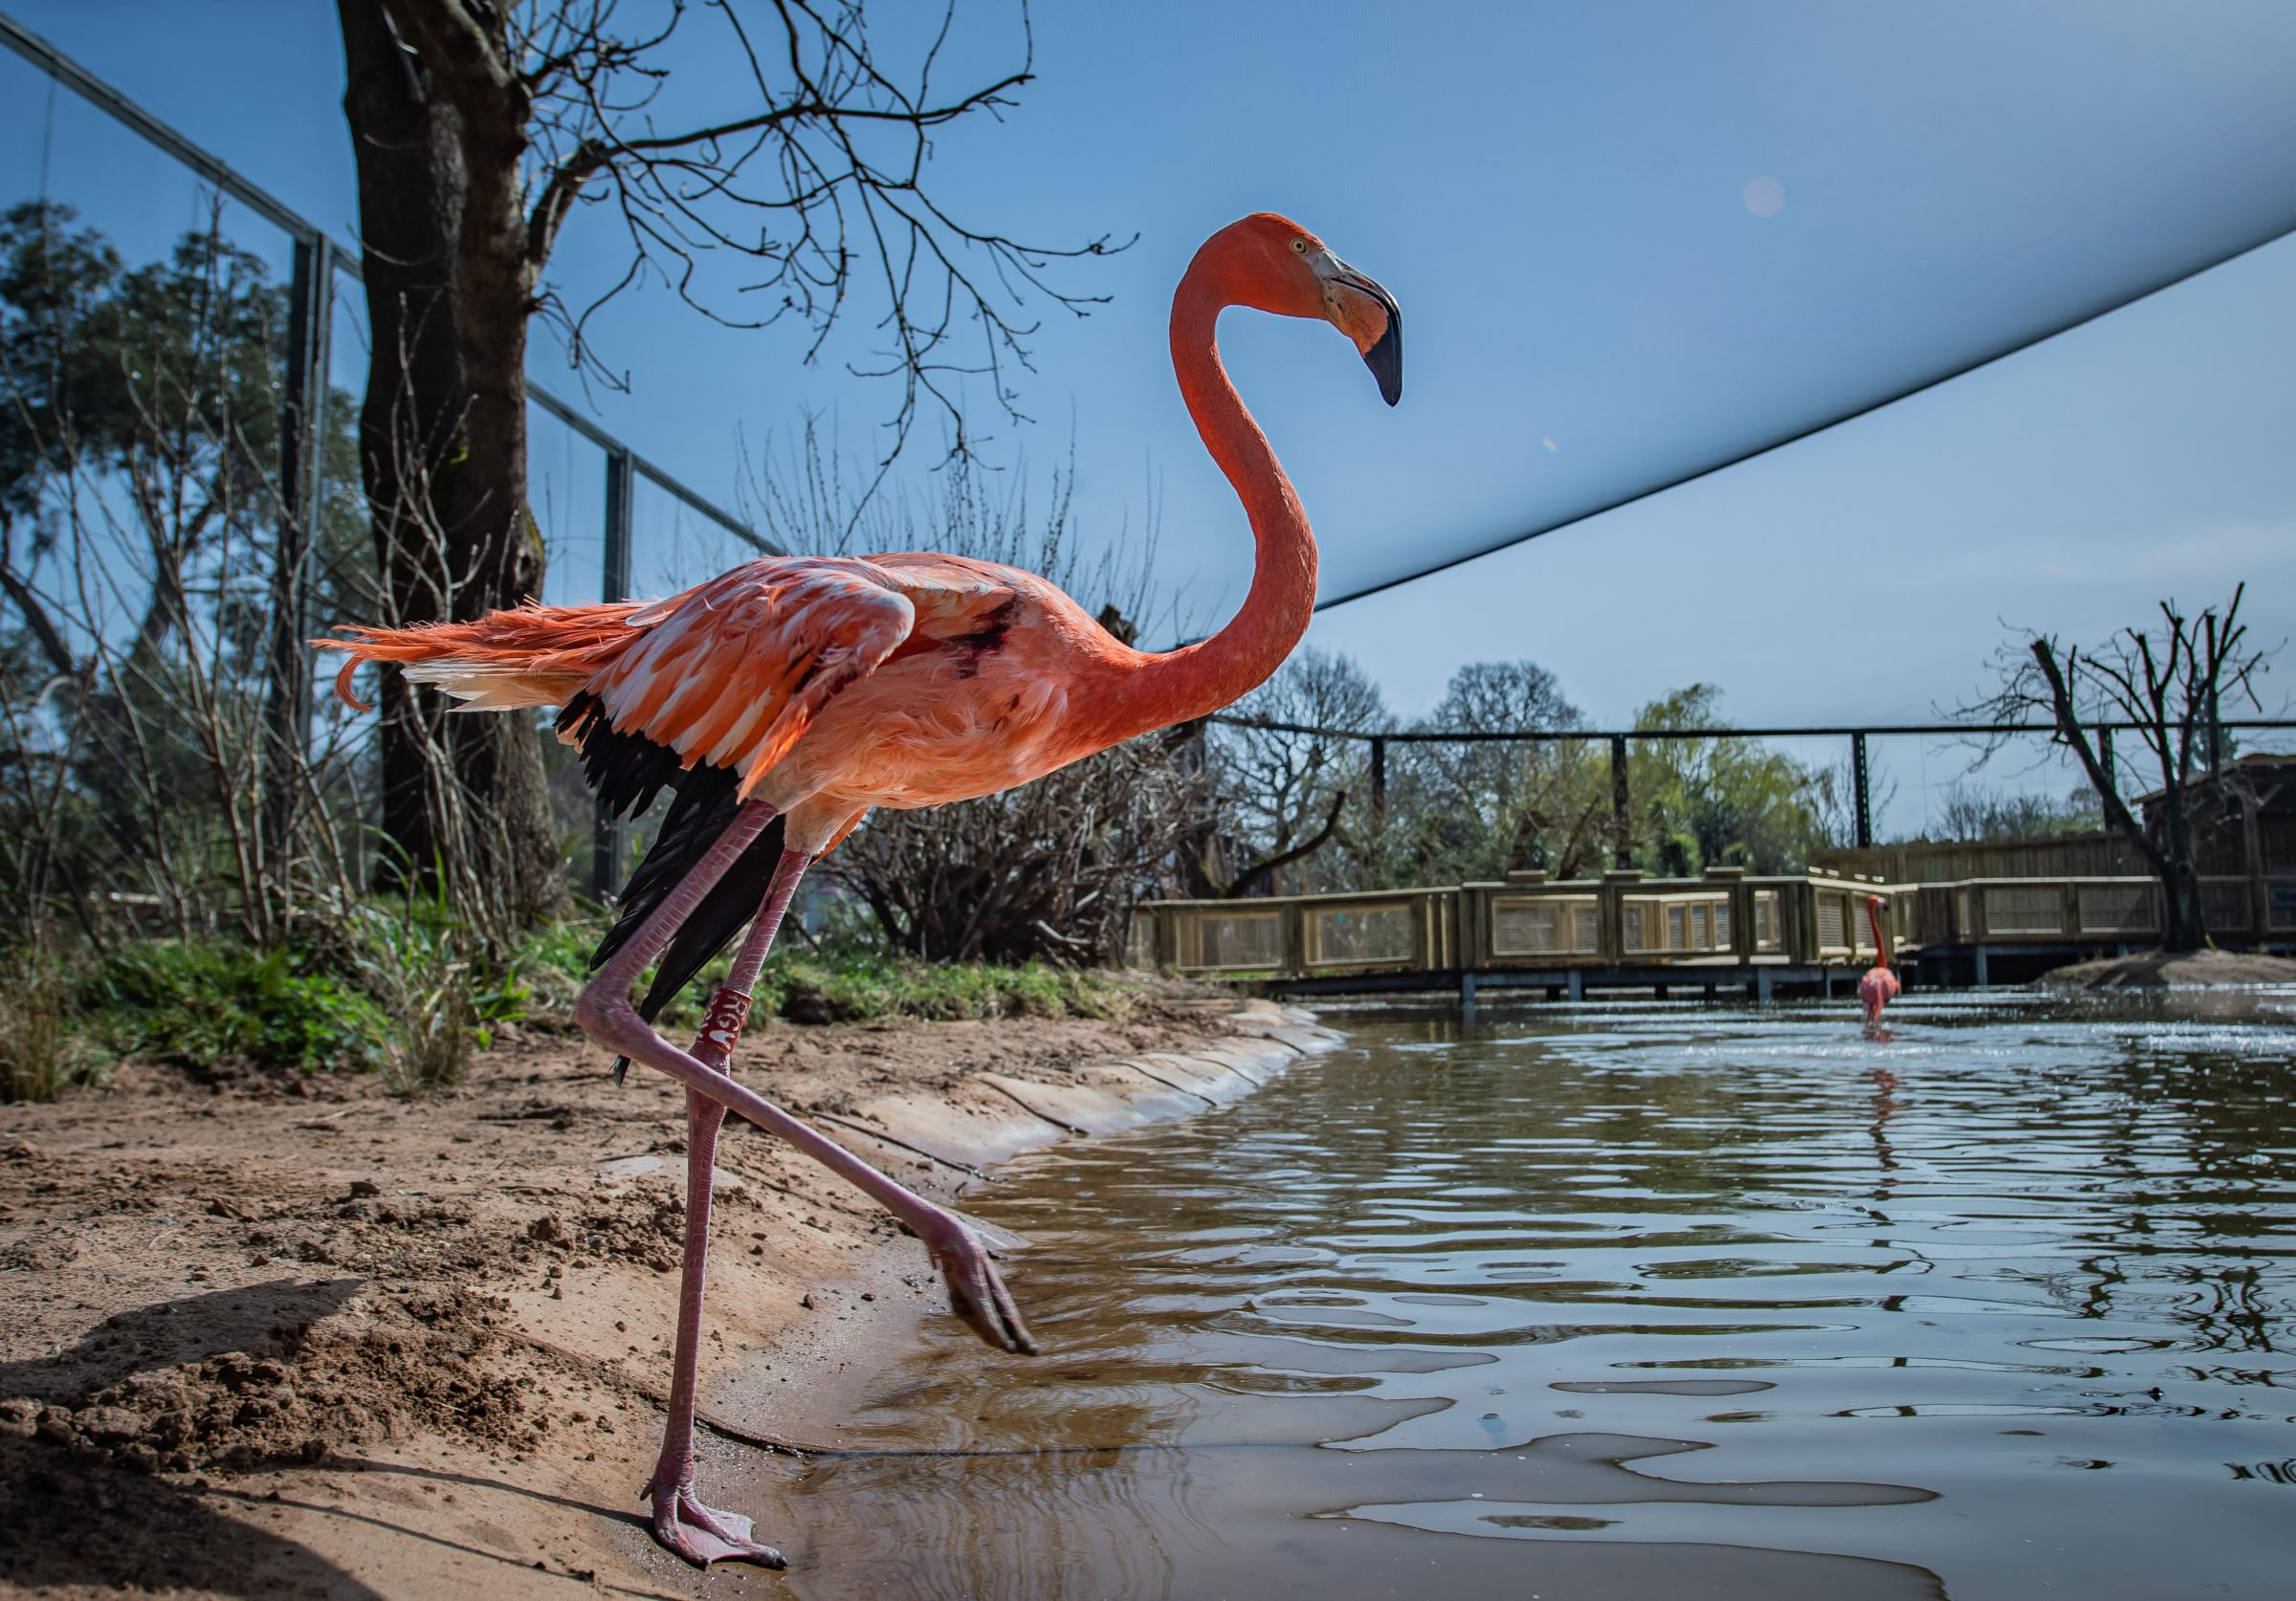 The new Latin American wetland aviary at Chester Zoo.